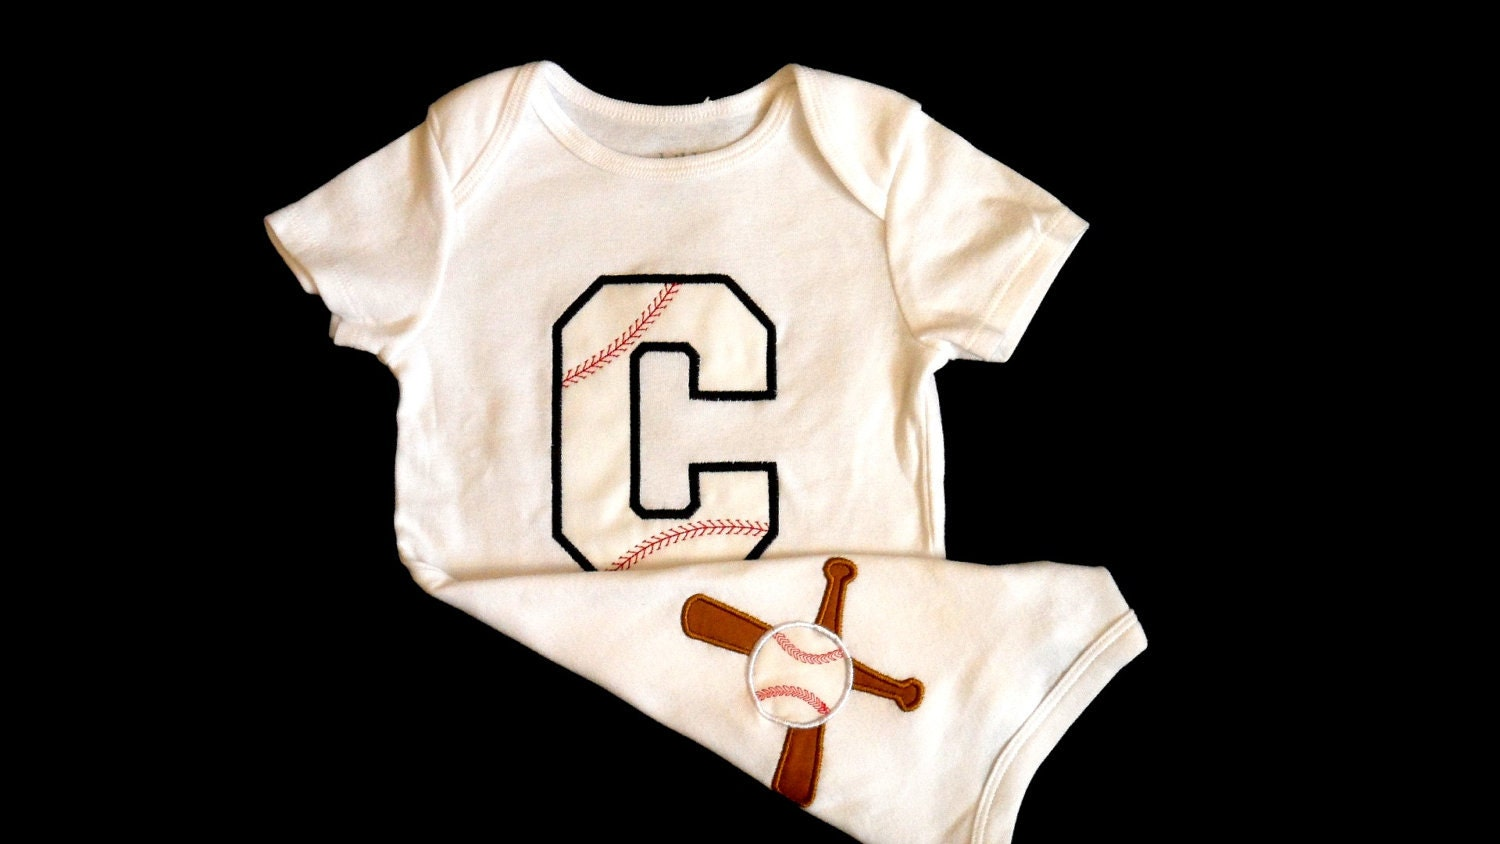 You searched for: baby boy baseball outfit! Etsy is the home to thousands of handmade, vintage, and one-of-a-kind products and gifts related to your search. No matter what you're looking for or where you are in the world, our global marketplace of sellers can help you .